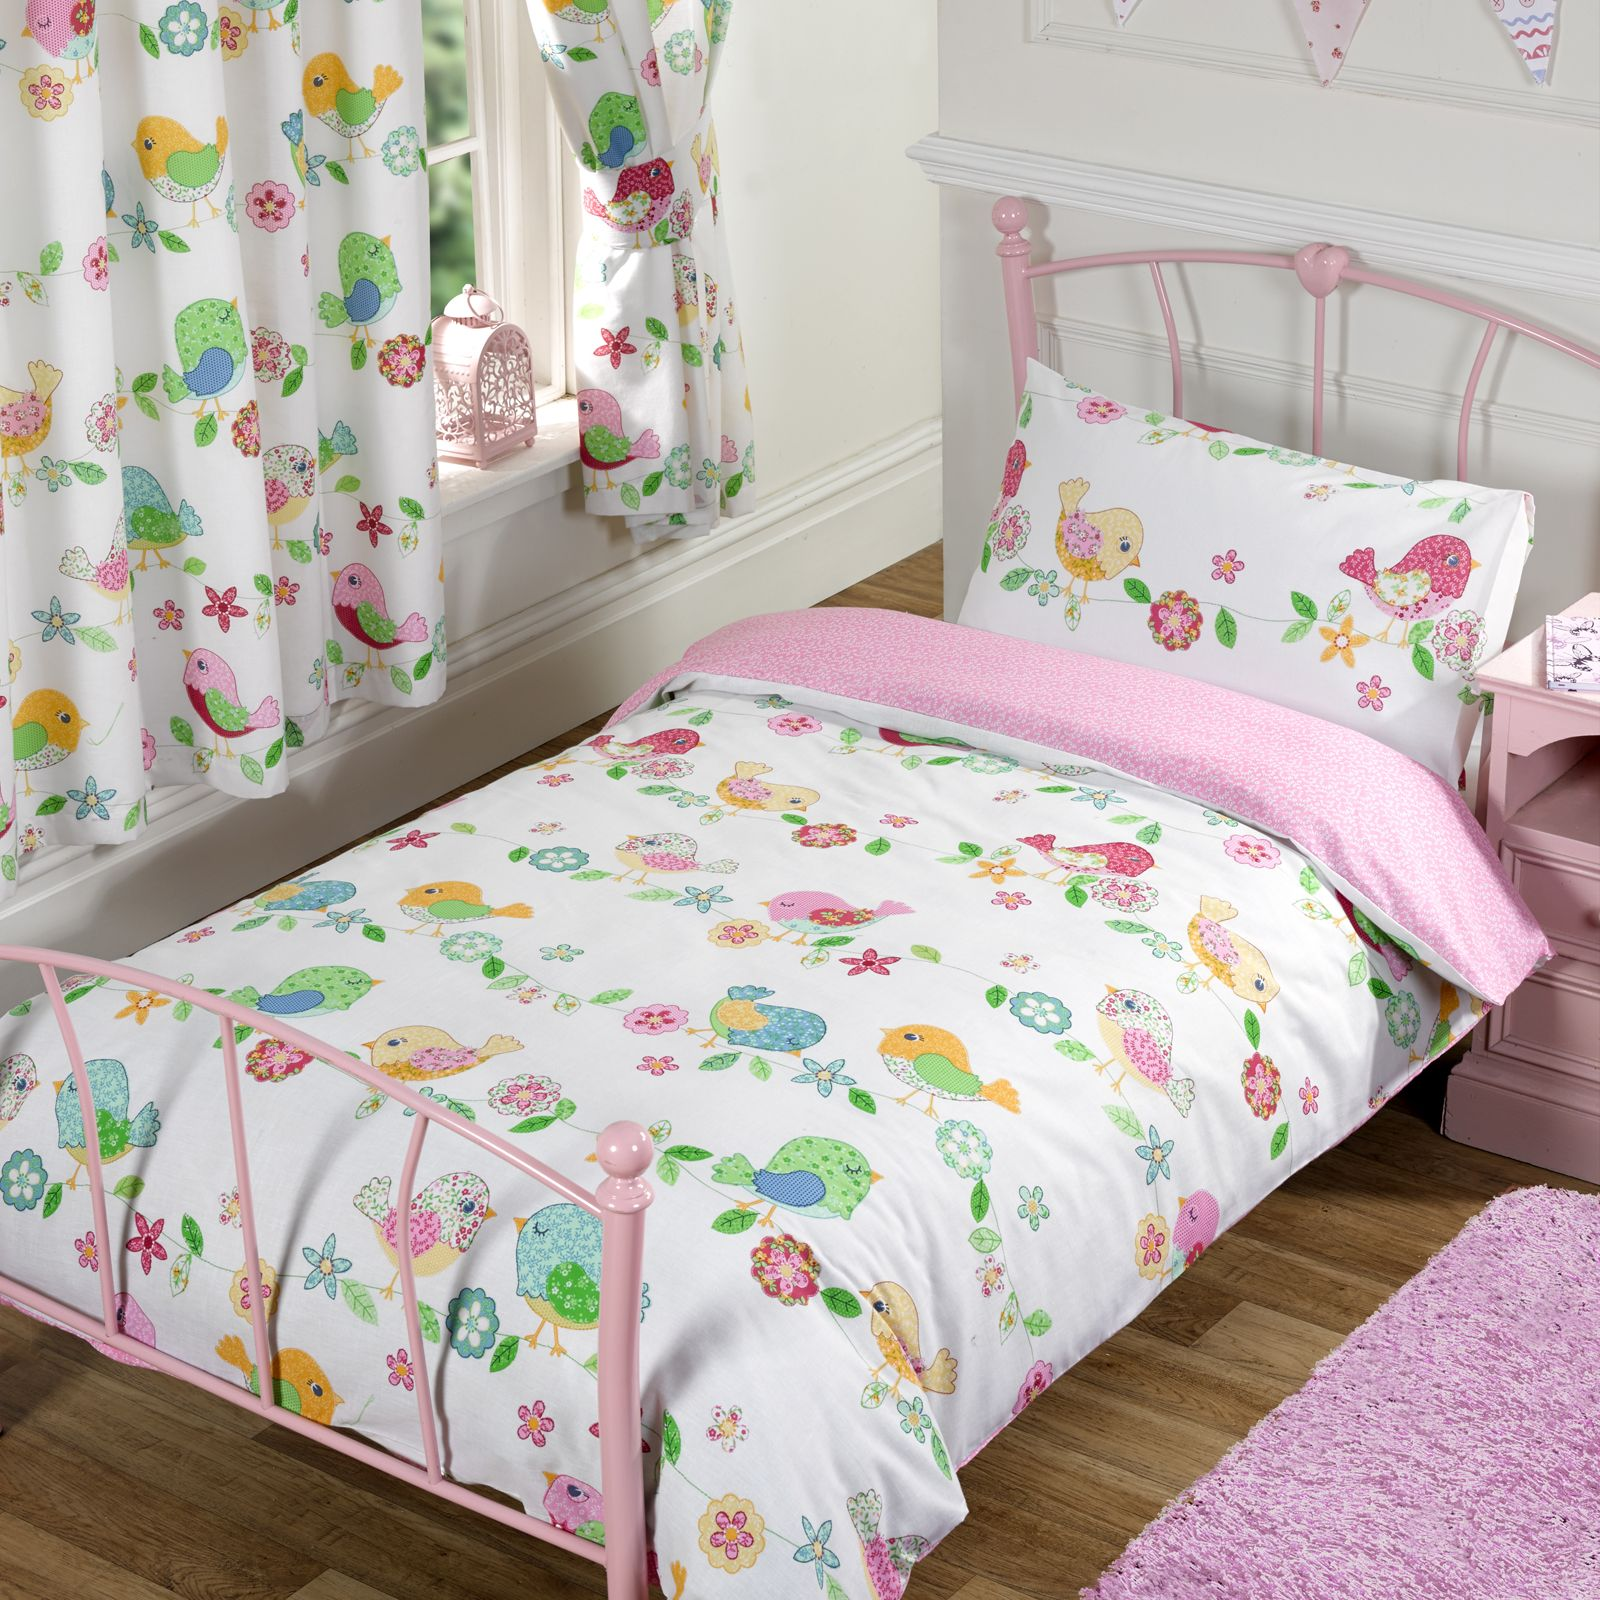 Toddler Double Bedding Sets